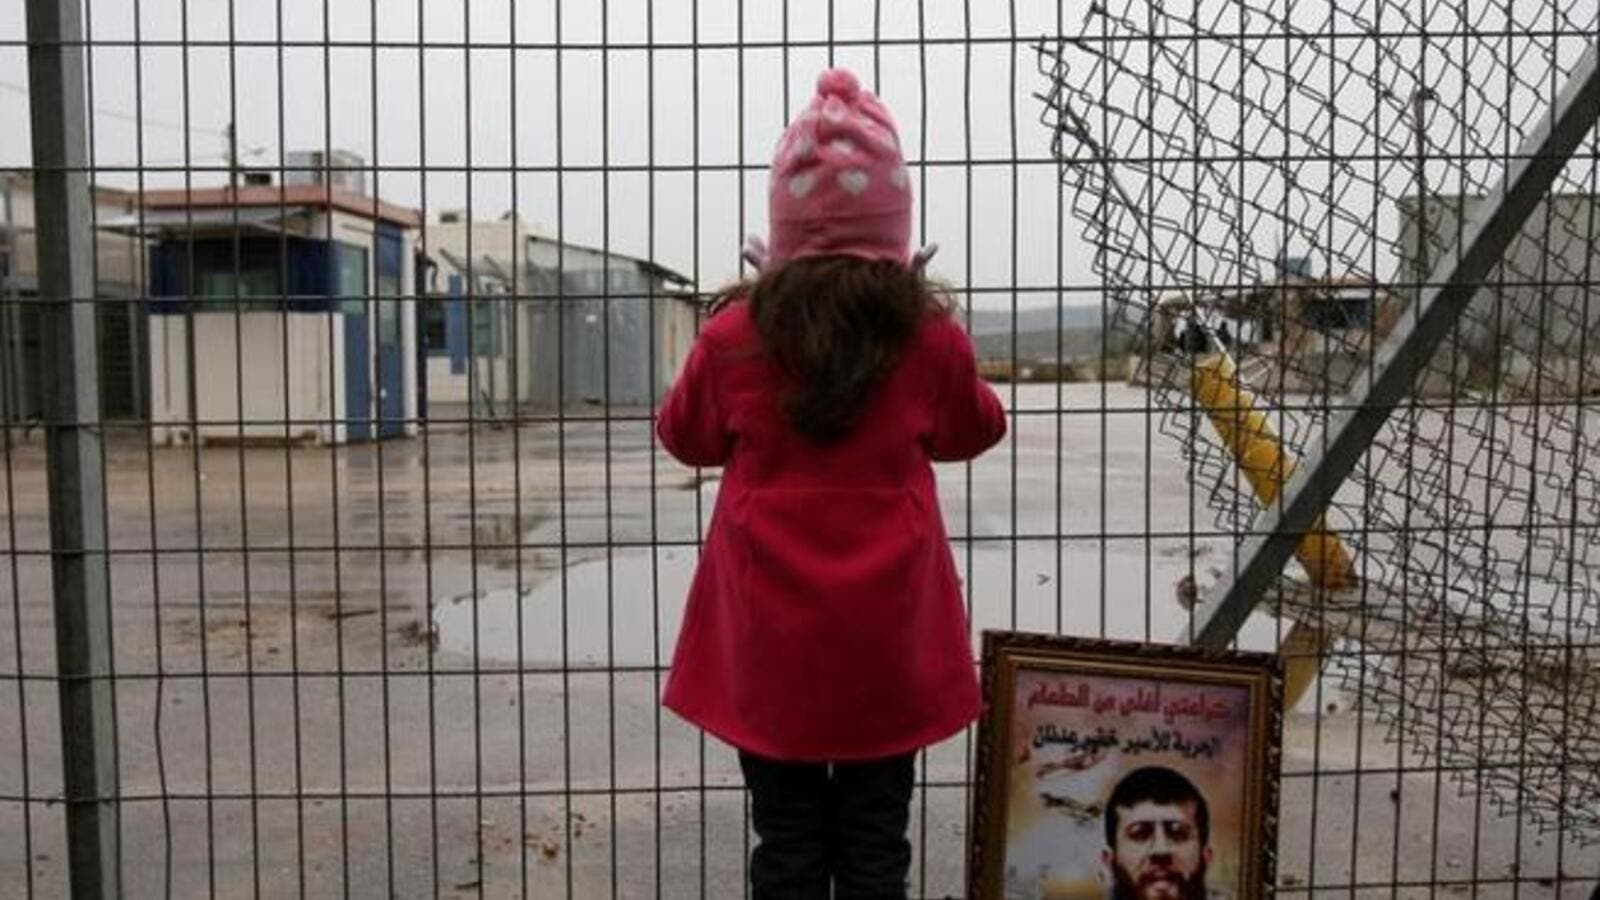 A Palestinian girl stands outside an Israeli jail. (AFP/File Photo)